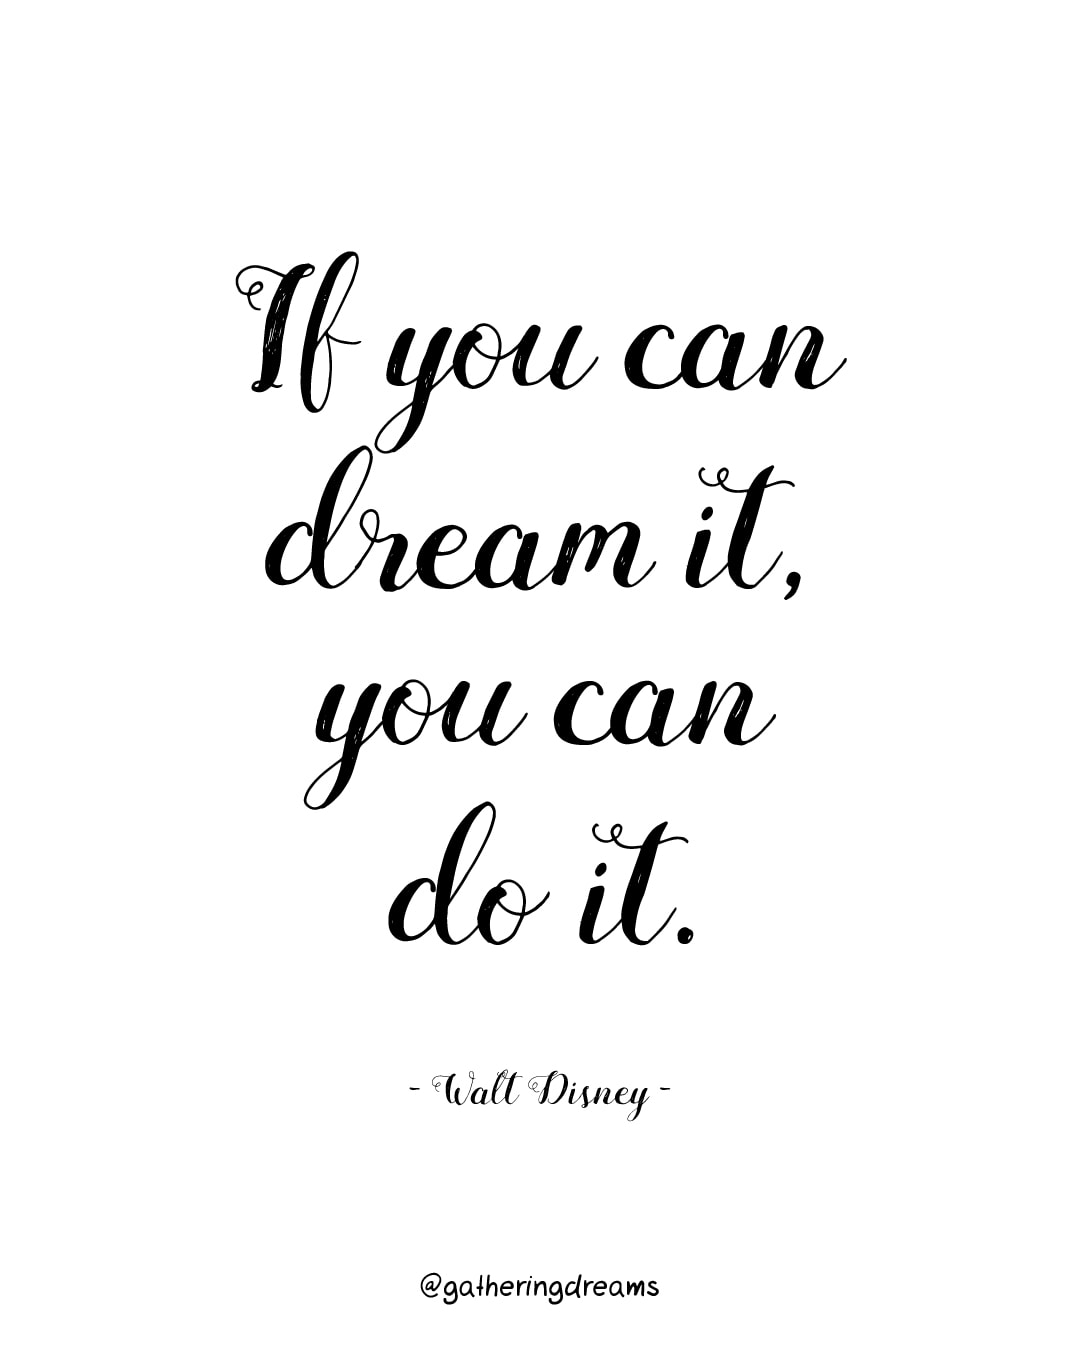 """If you can dream it you can do it"" Walt Disney - The best dream quotes of all times #inspiration #inspirationalquotes #motivationalquotes #dreams"